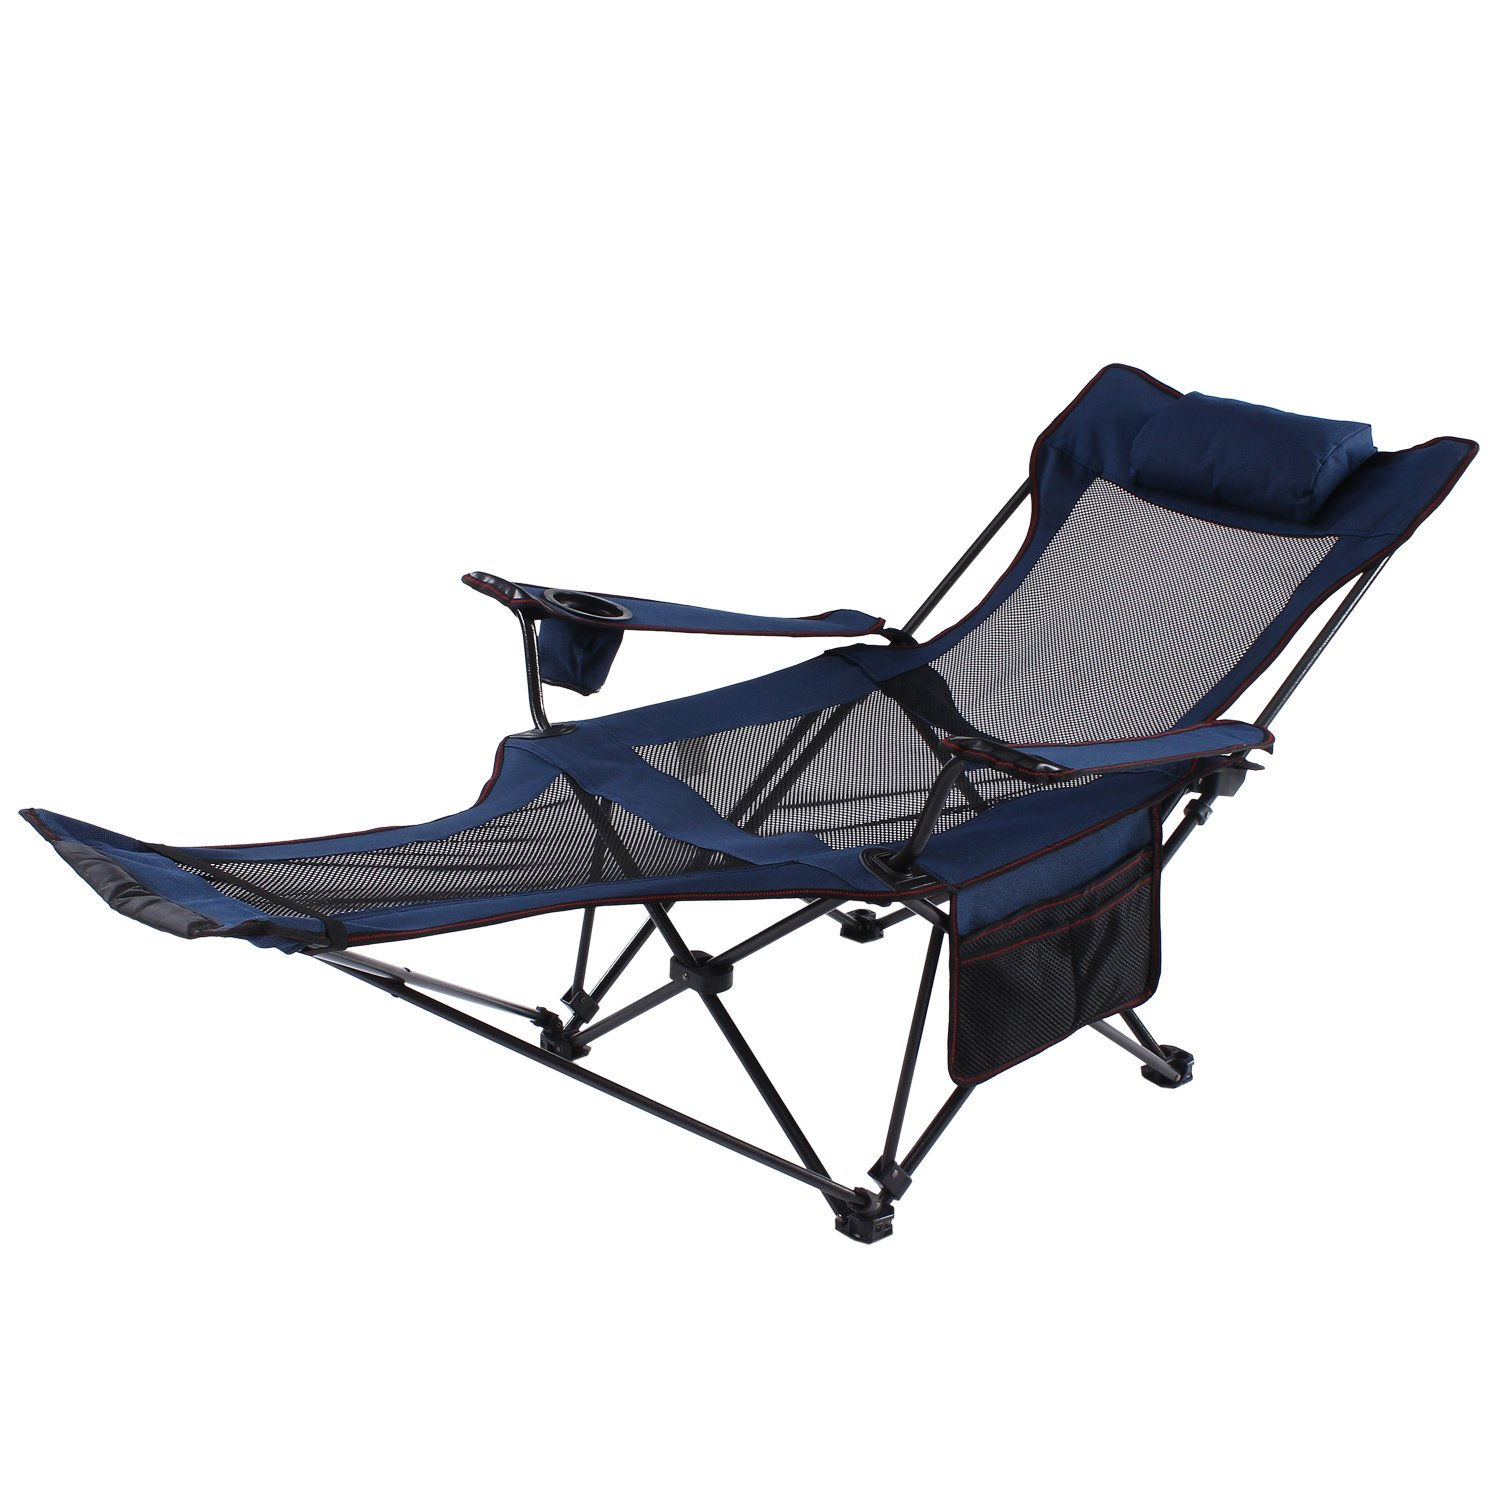 Magnificent Seatopia Camping Recliner And Lounge Chair Backpacking Folding Chair With Headrest Footrest And Storage Bag For Outdoor Camping Bbq 300Lbs Weight Unemploymentrelief Wooden Chair Designs For Living Room Unemploymentrelieforg